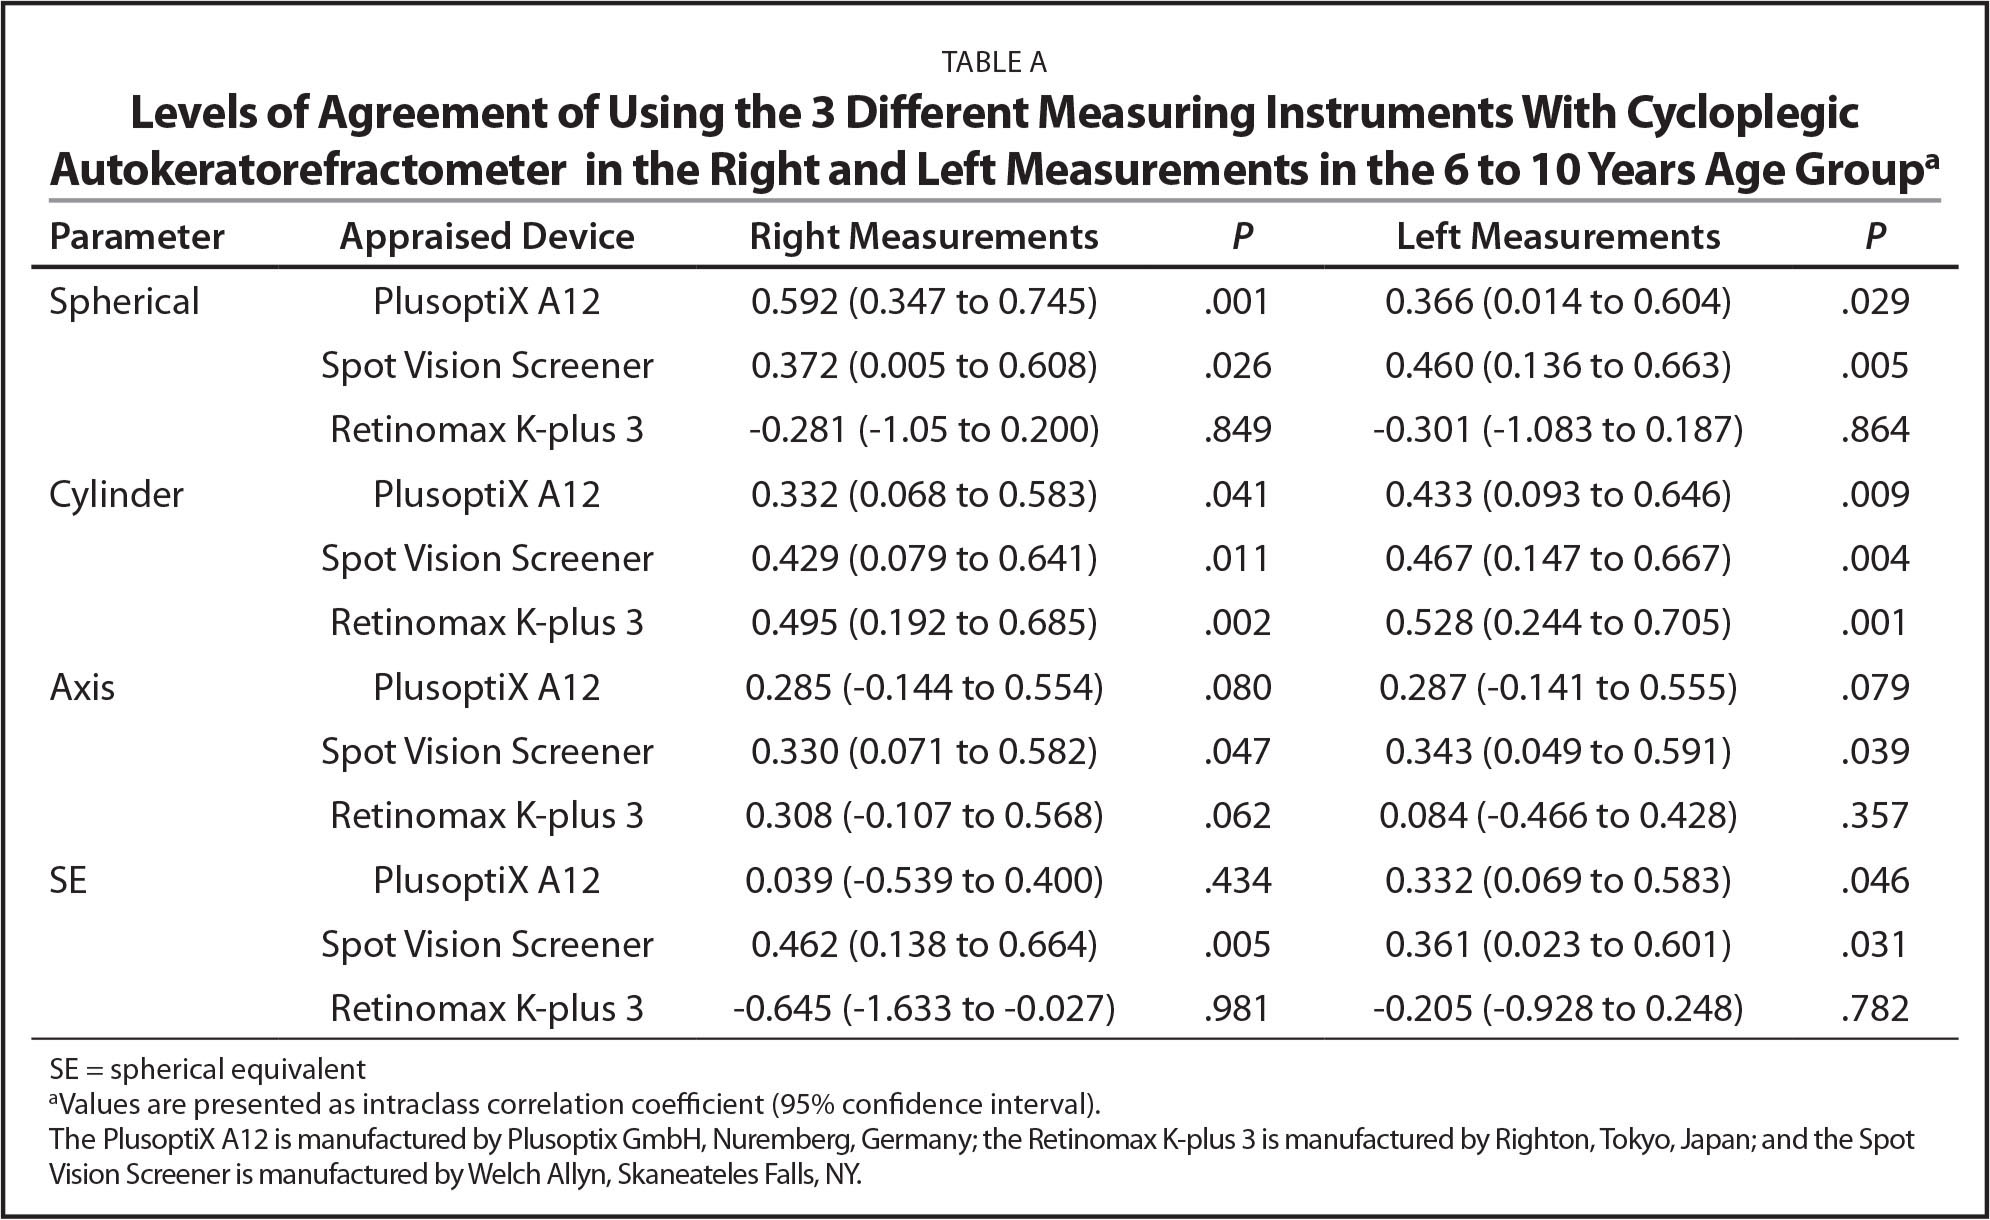 Levels of Agreement of Using the 3 Different Measuring Instruments With Cycloplegic Autokeratorefractometer in the Right and Left Measurements in the 6 to 10 Years Age Groupa